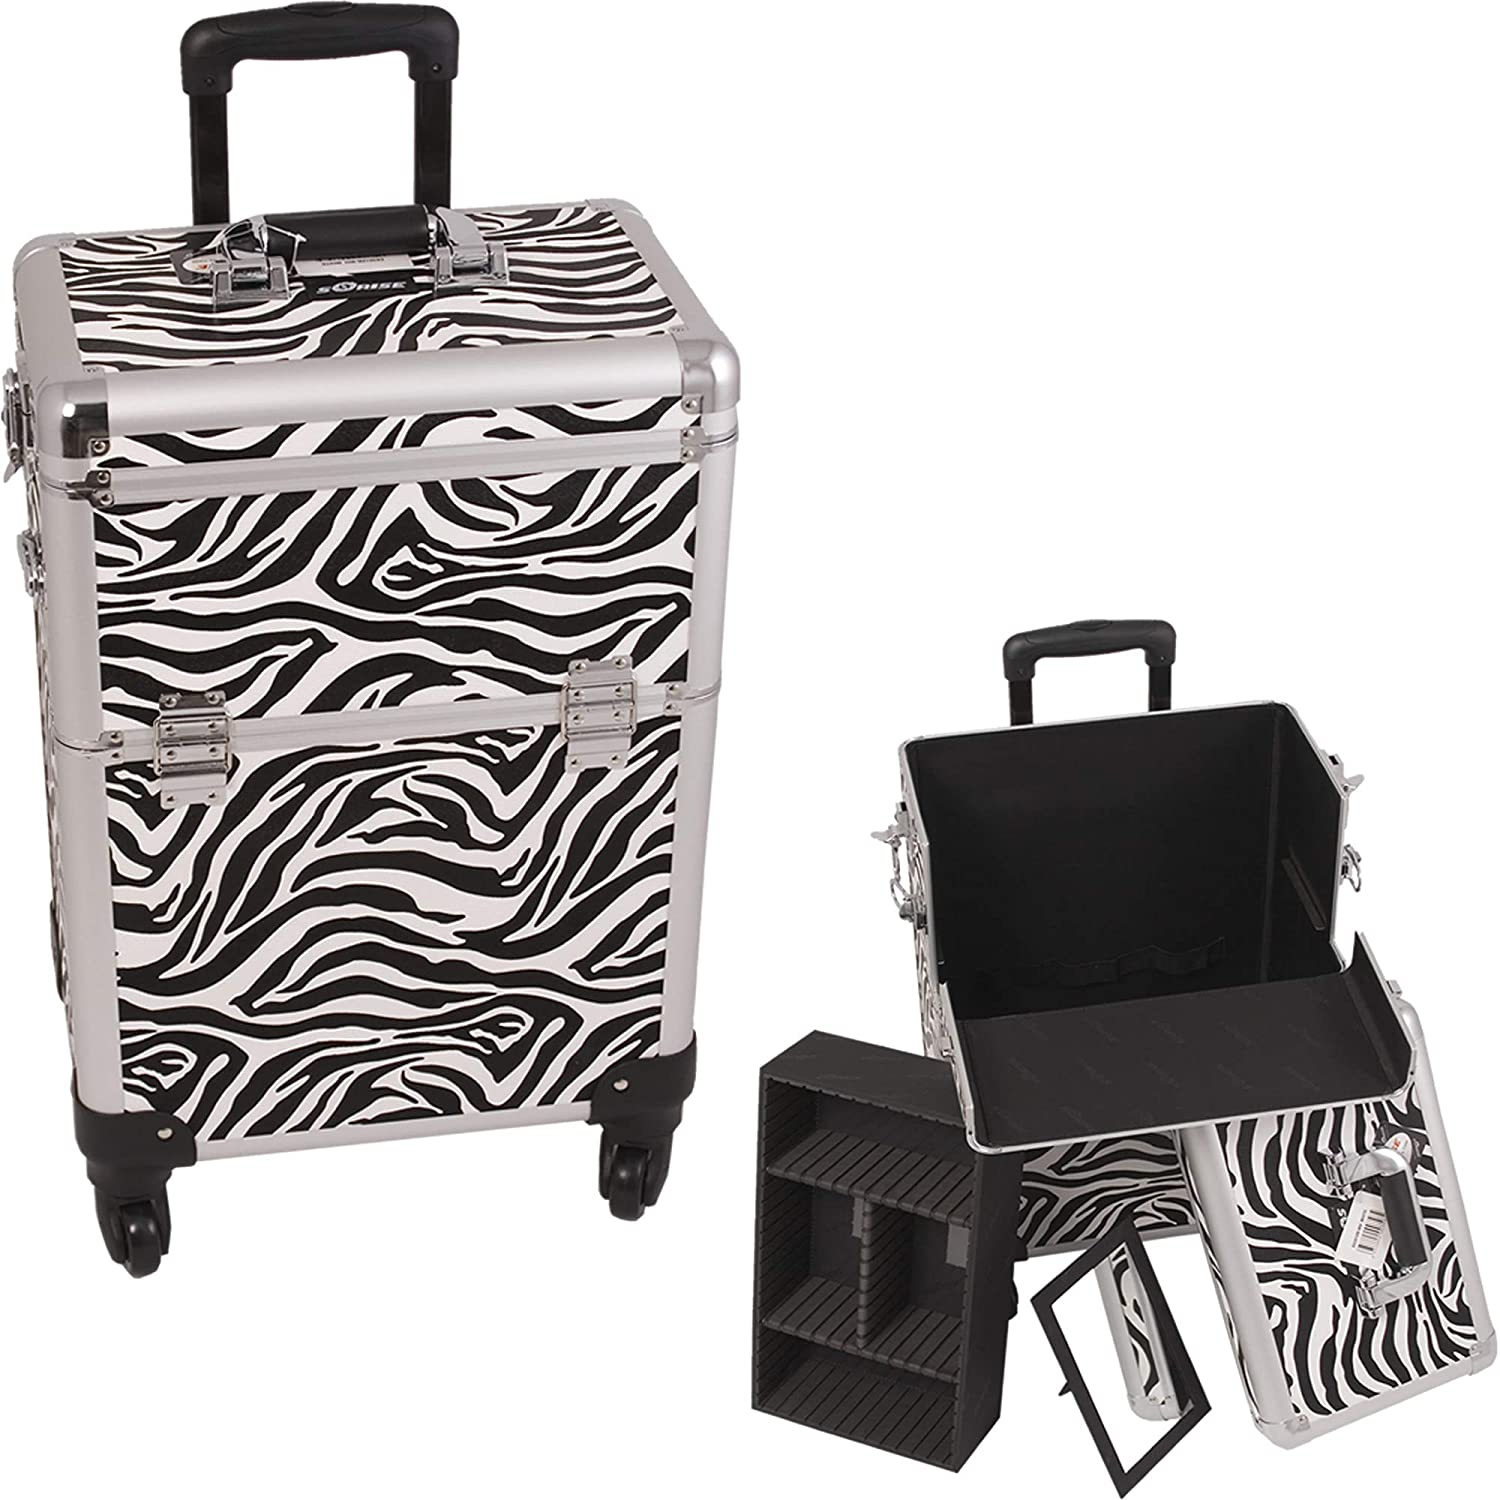 SUNRISE Professional Makeup Case on Wheels E6301 Aluminum, Removable Tray with Adjustable Dividers, 4 Wheel Spinner, Locking with Mirror, Zebra